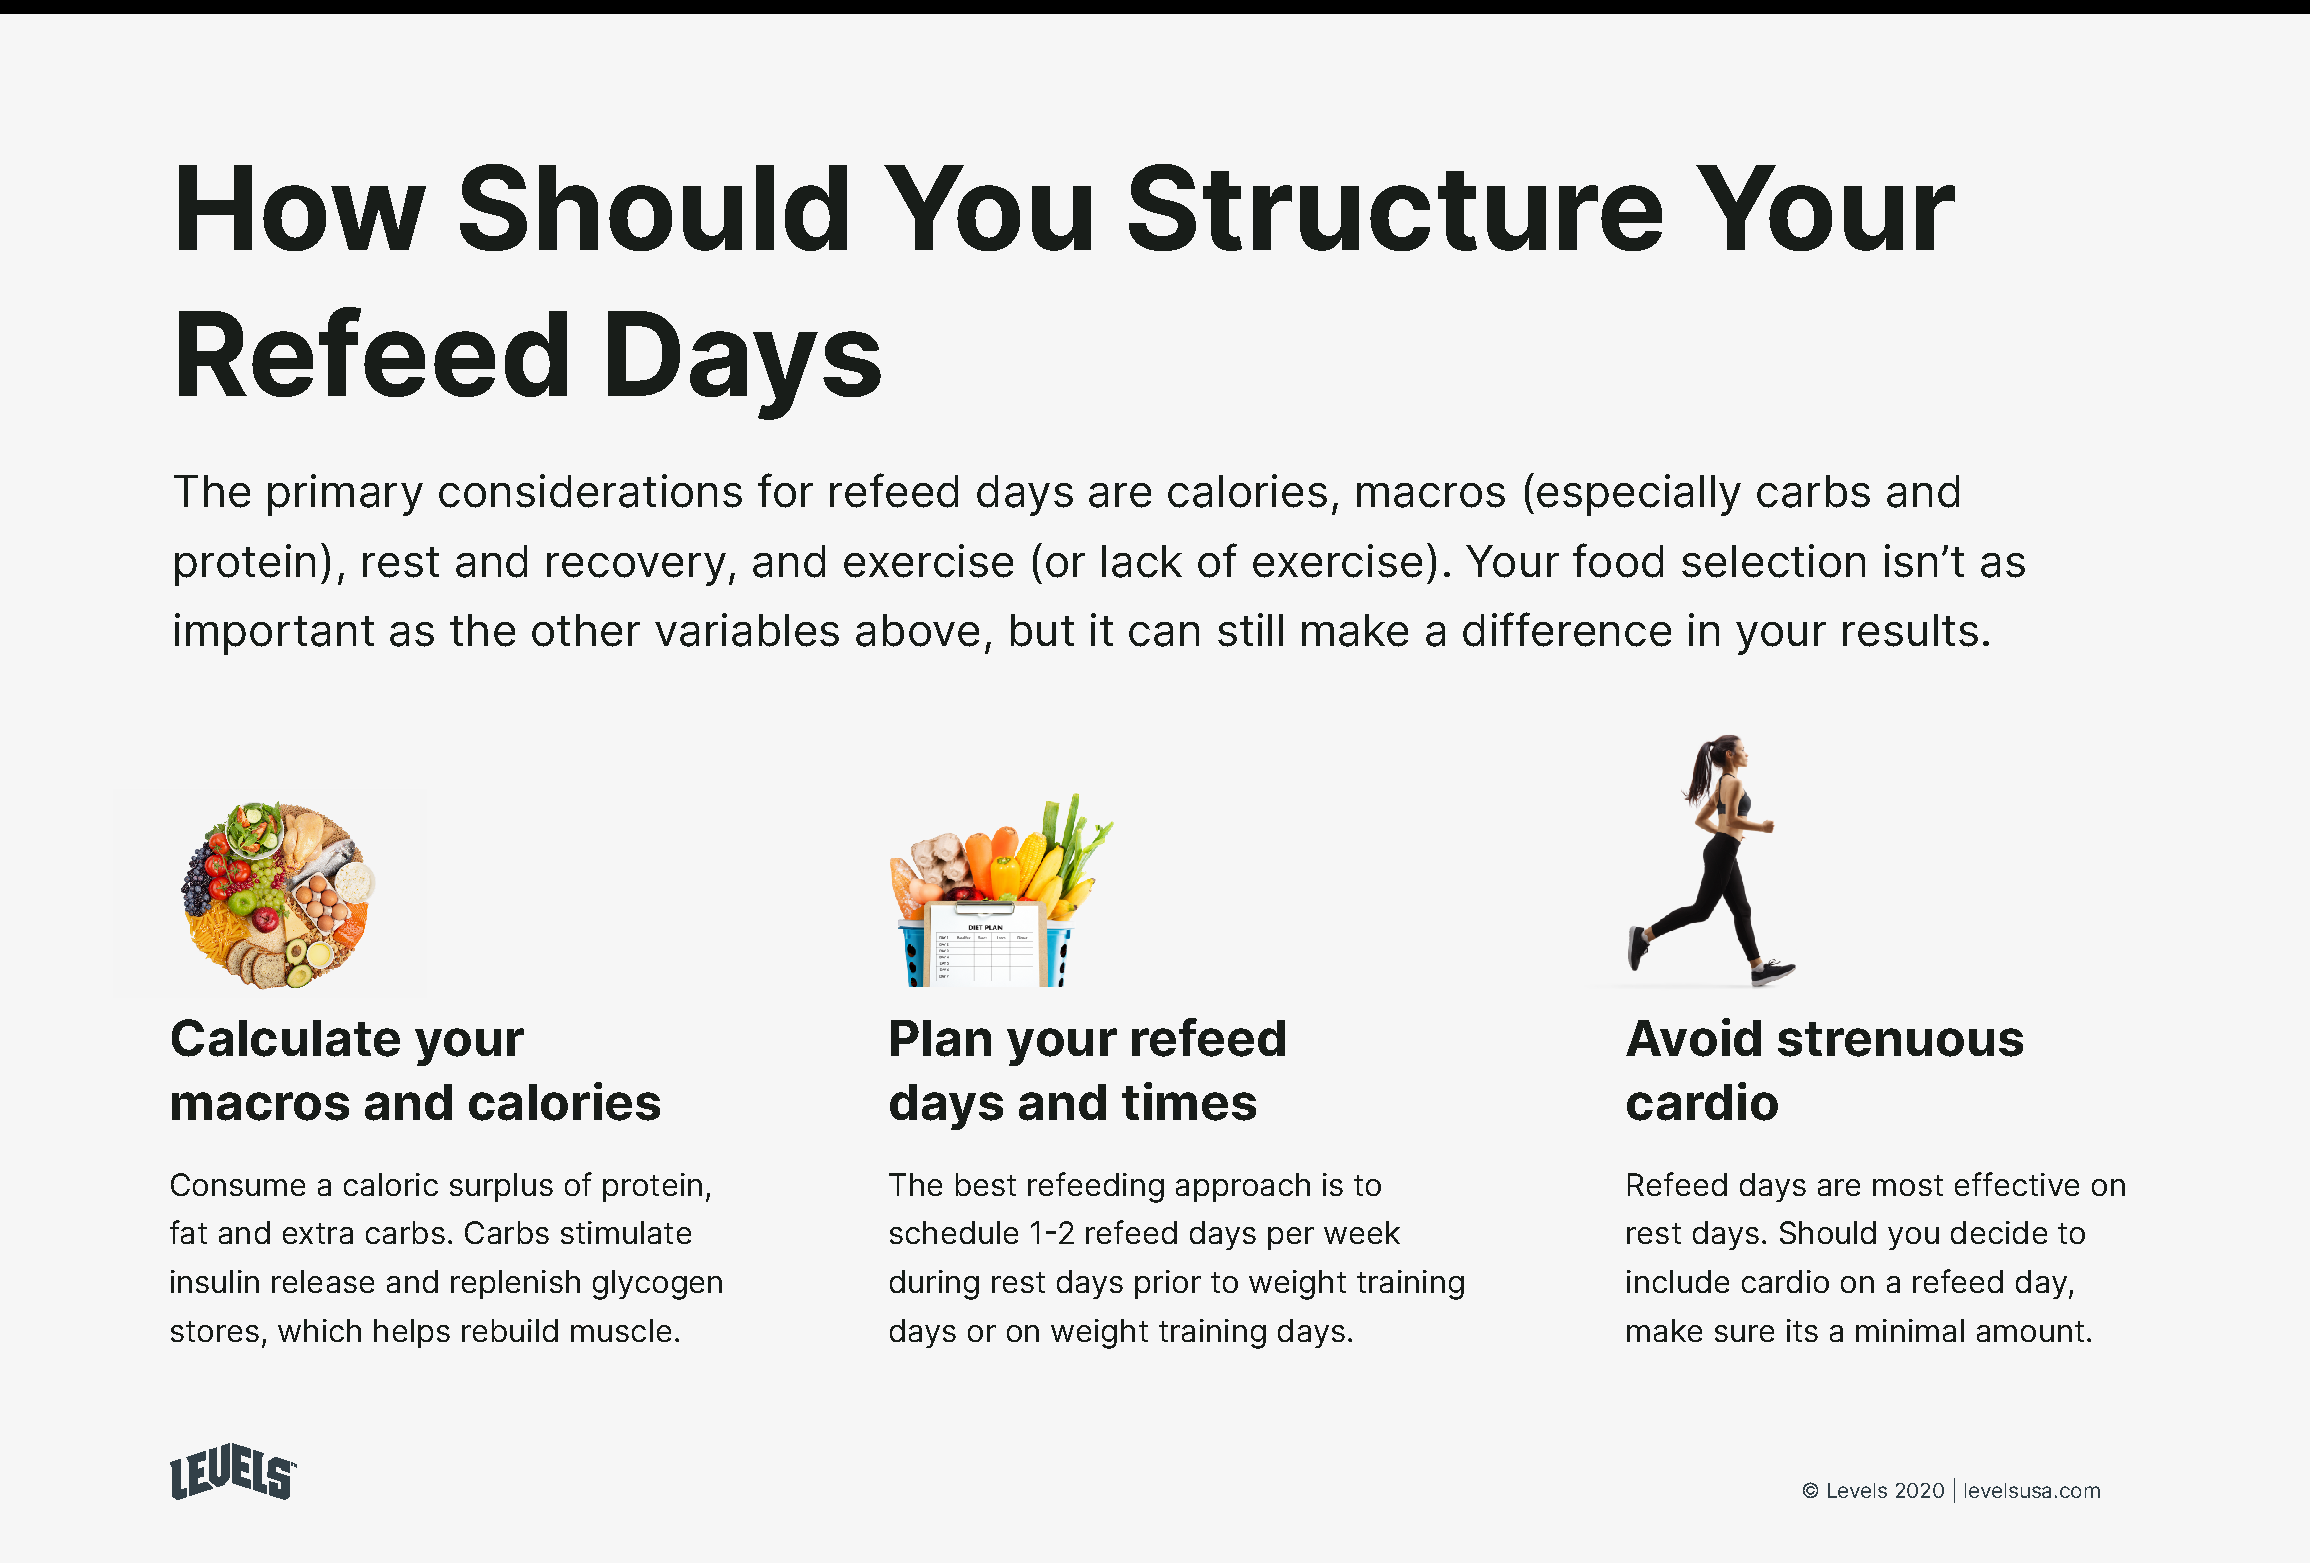 How Should You Structure A Refeed Day - Infographic